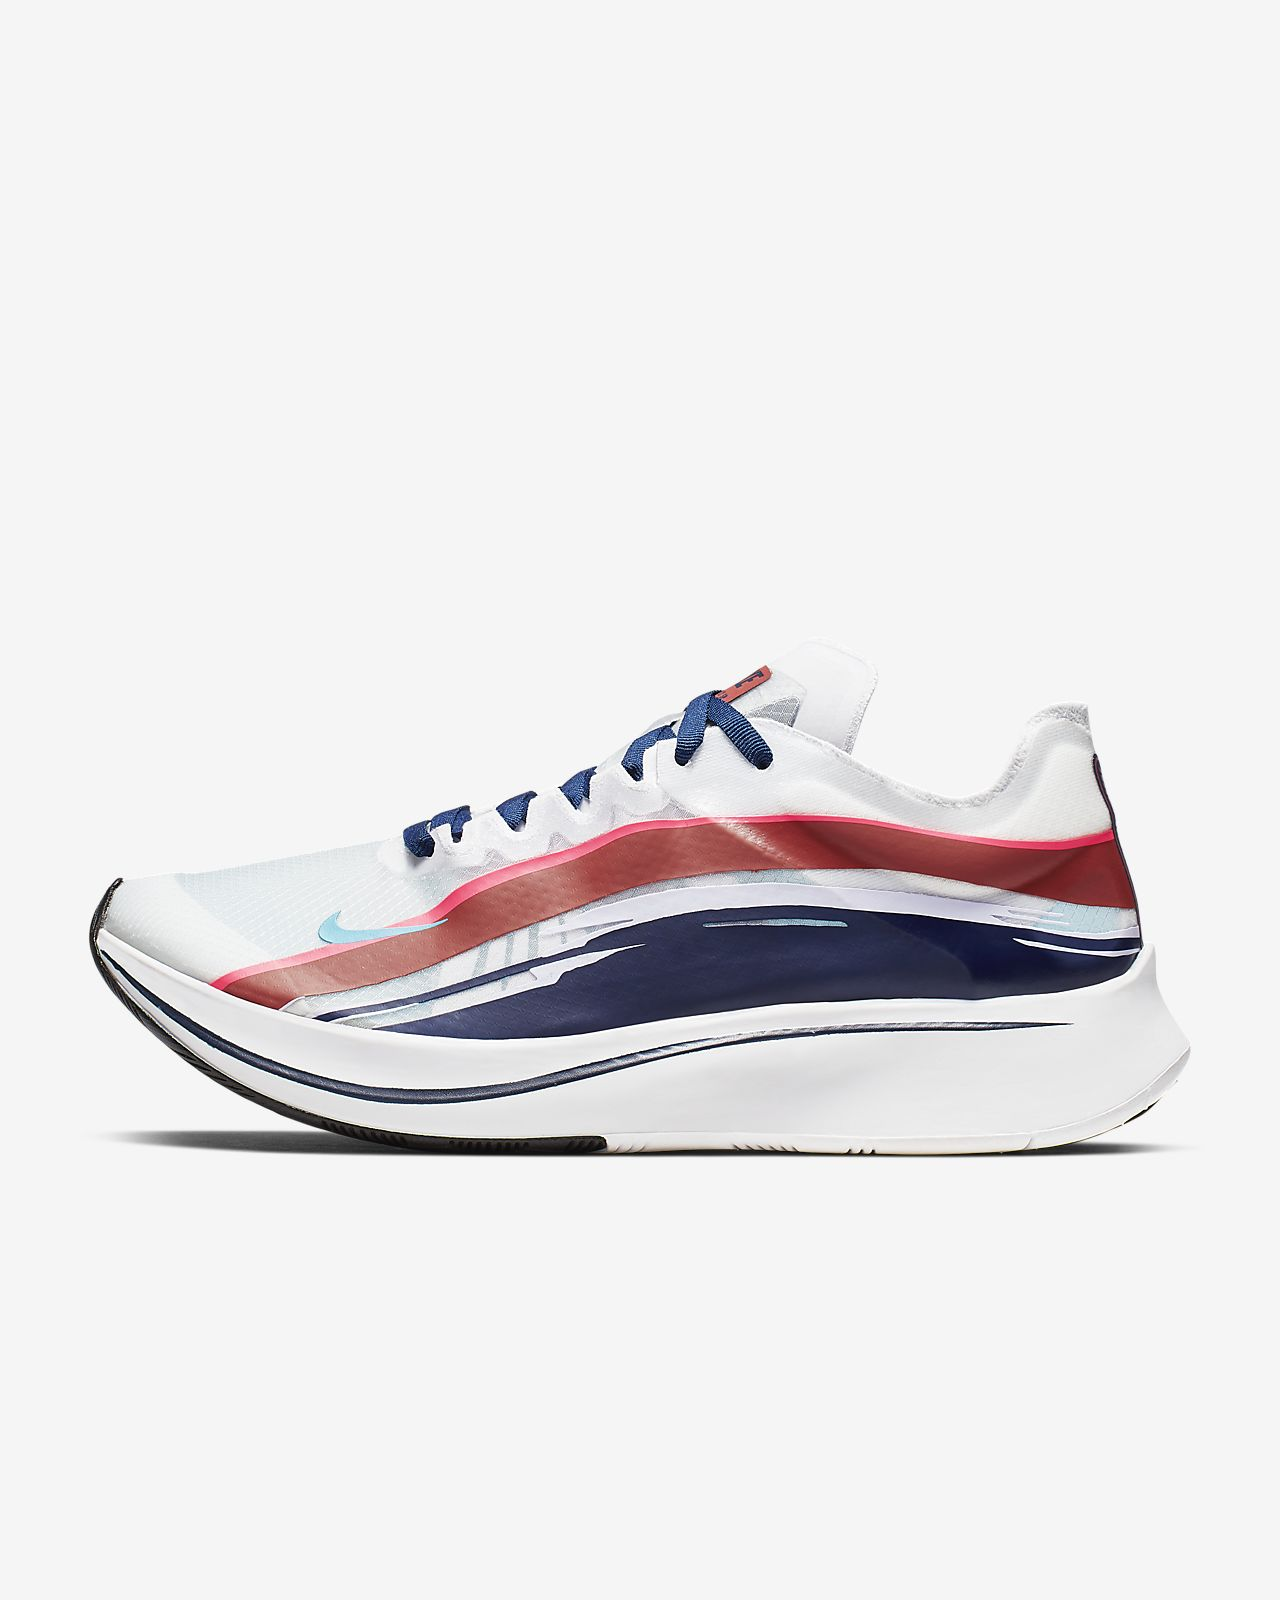 954983b37d24 Nike Zoom Fly SP Women s Running Shoe. Nike.com GB